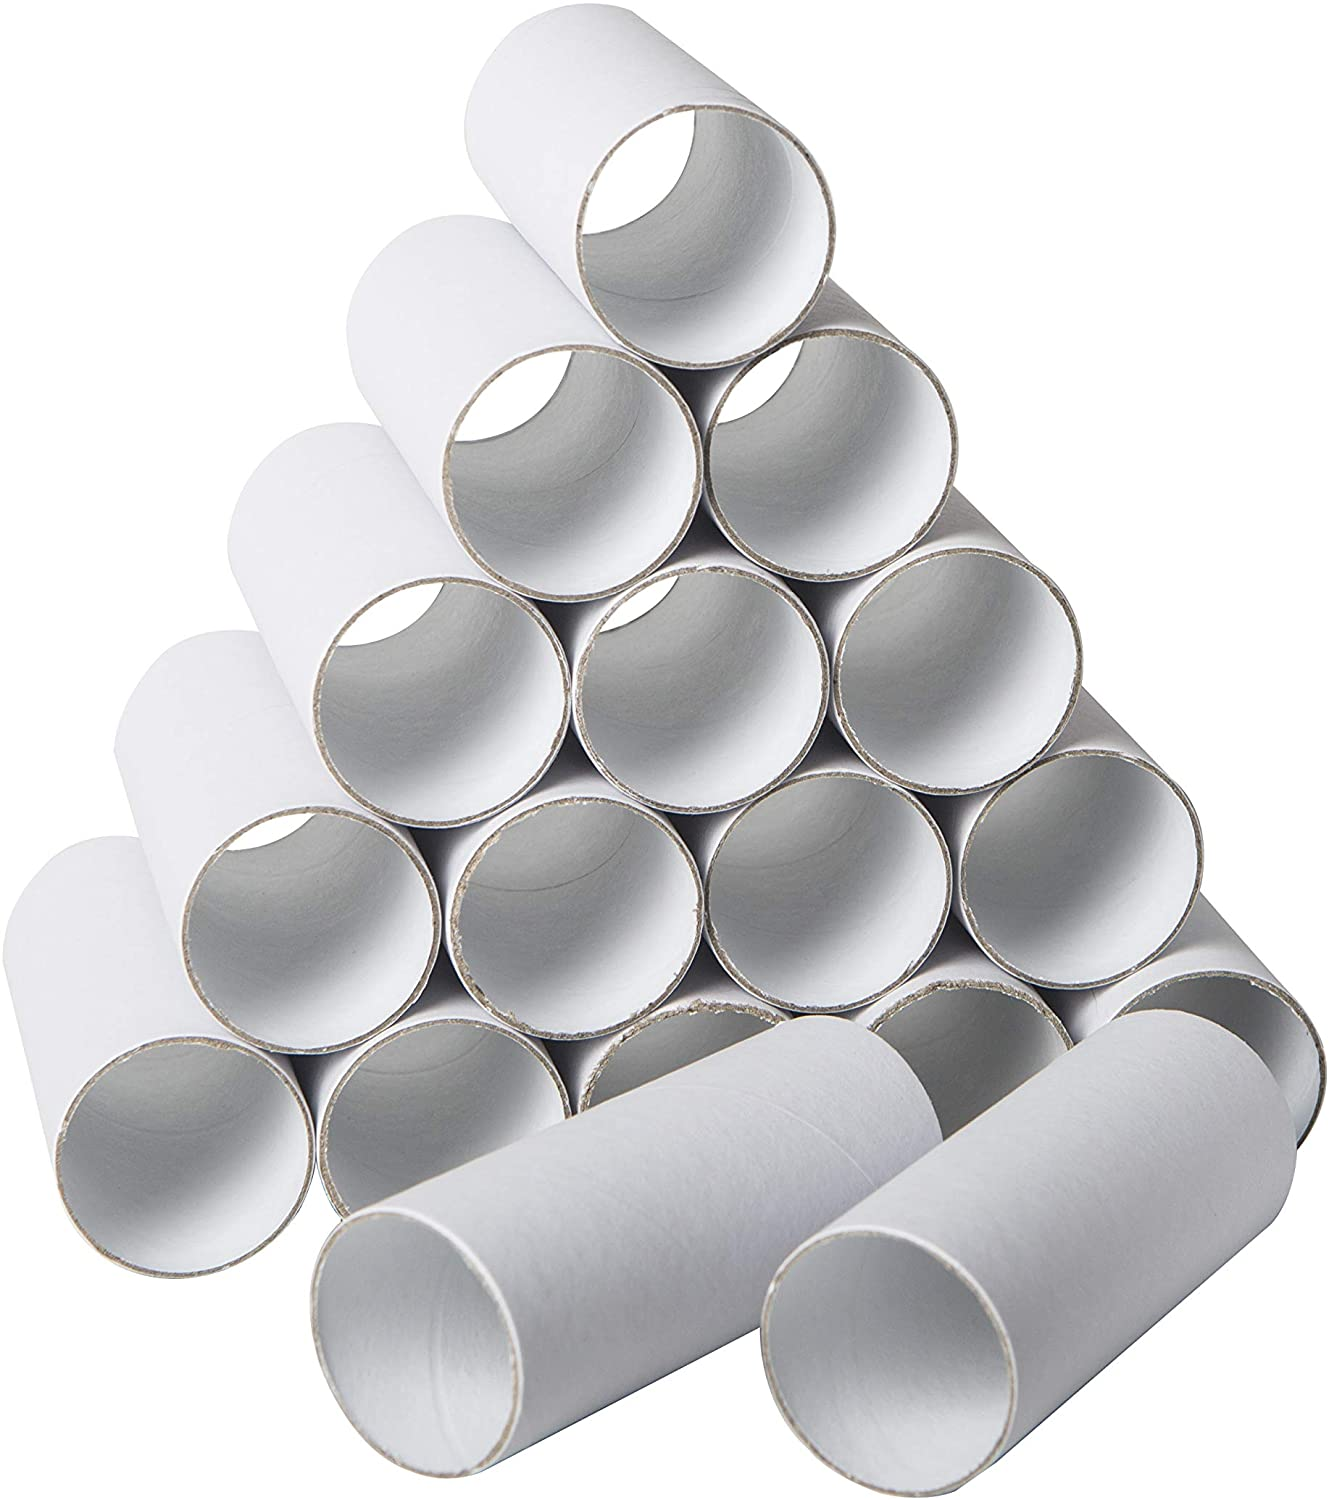 30 Pack Craft Rolls - Round Cardboard Tubes - Cardboard Tubes for Crafts - Craft Tubes - Paper Tube for Crafts - 1.57 x 3.9 Inches - White